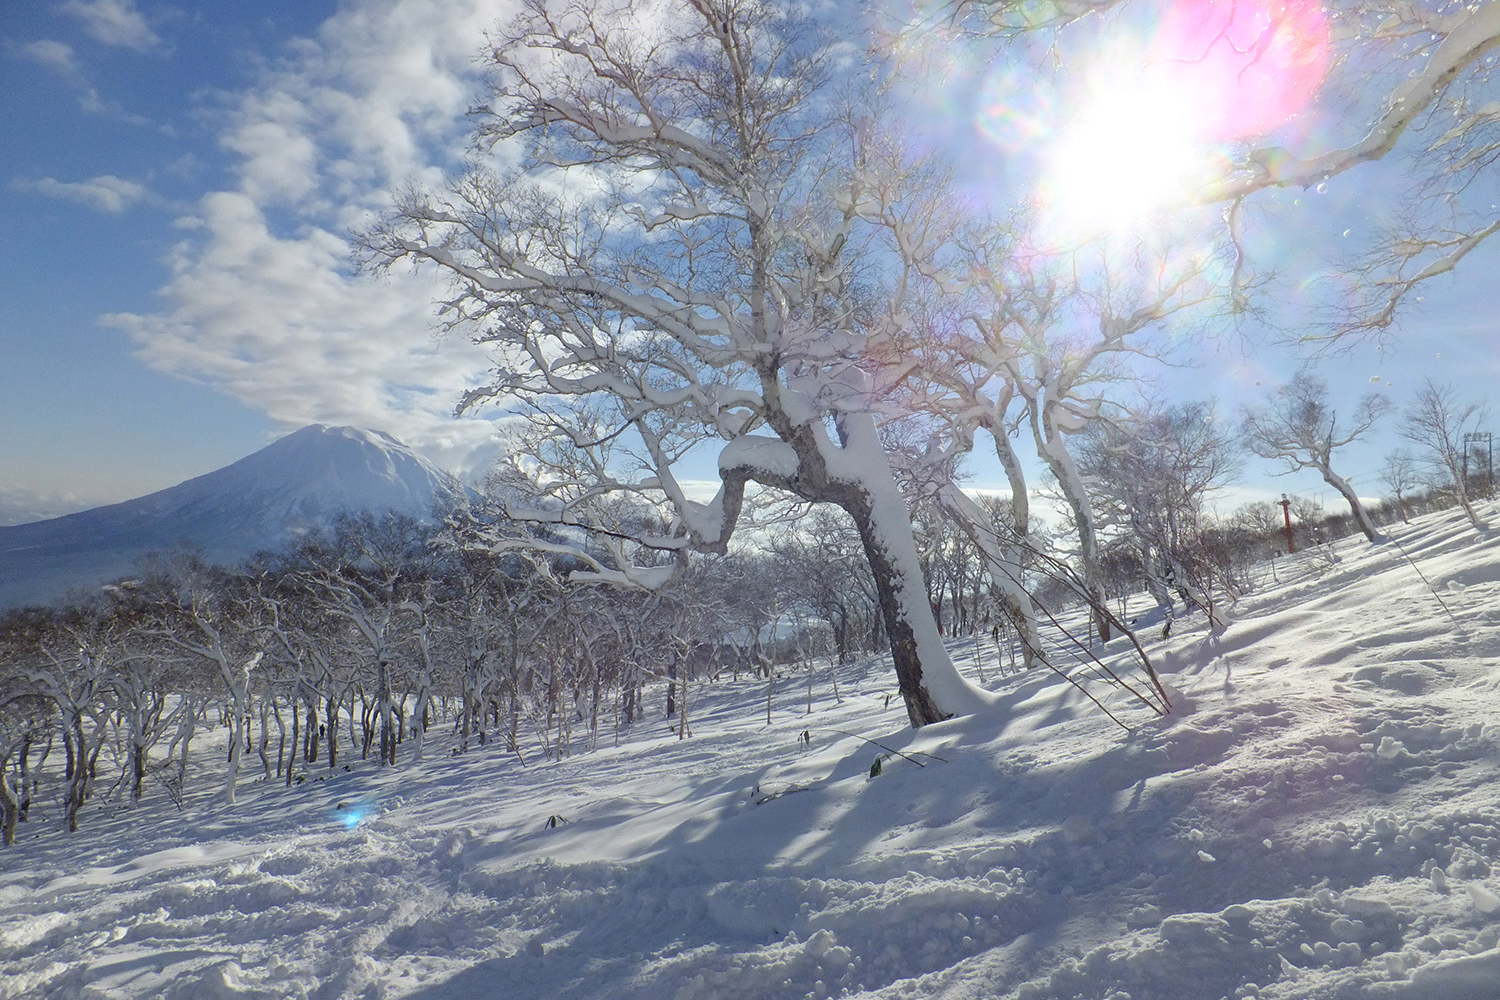 Japan_Niseko_Mount-Yotei.jpg